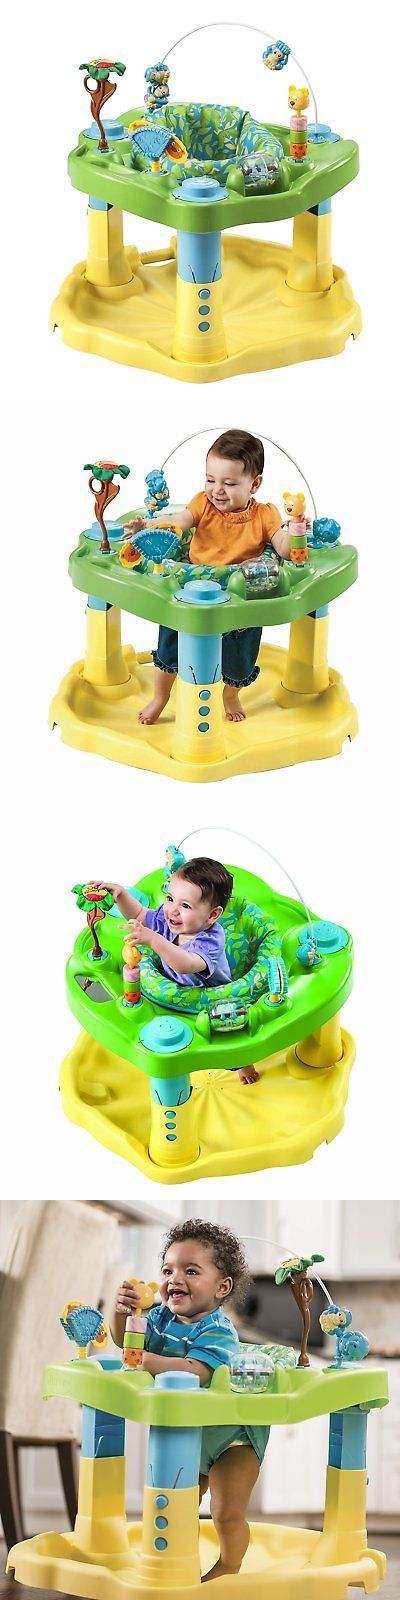 0bdb303cc Exersaucer Baby Bouncer Jumper Learning Activity Zoo Center Boy ...